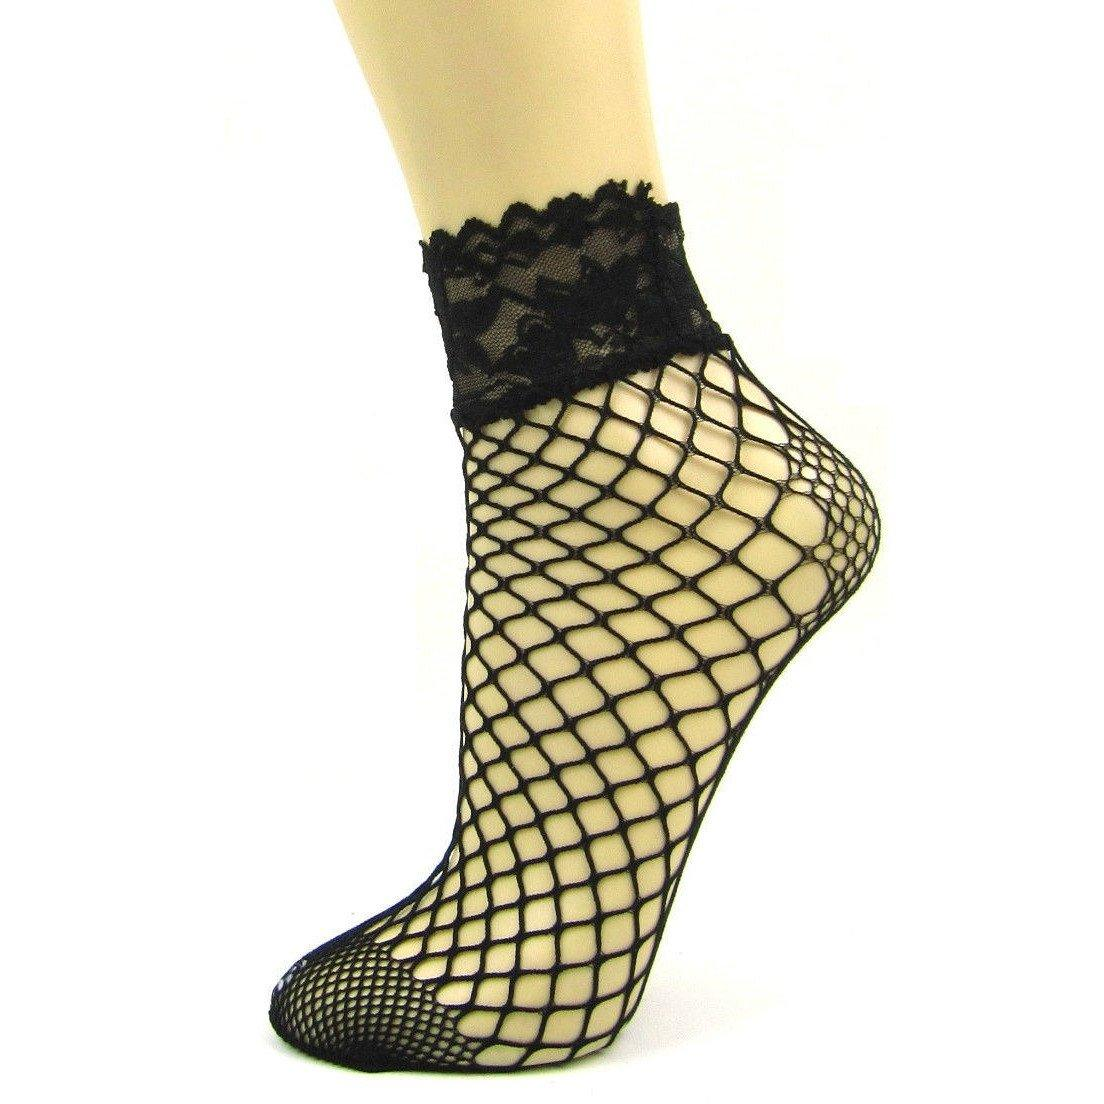 Big Net Lace Top Ankle Socks With Reinforced Toe - Leggsbeautiful